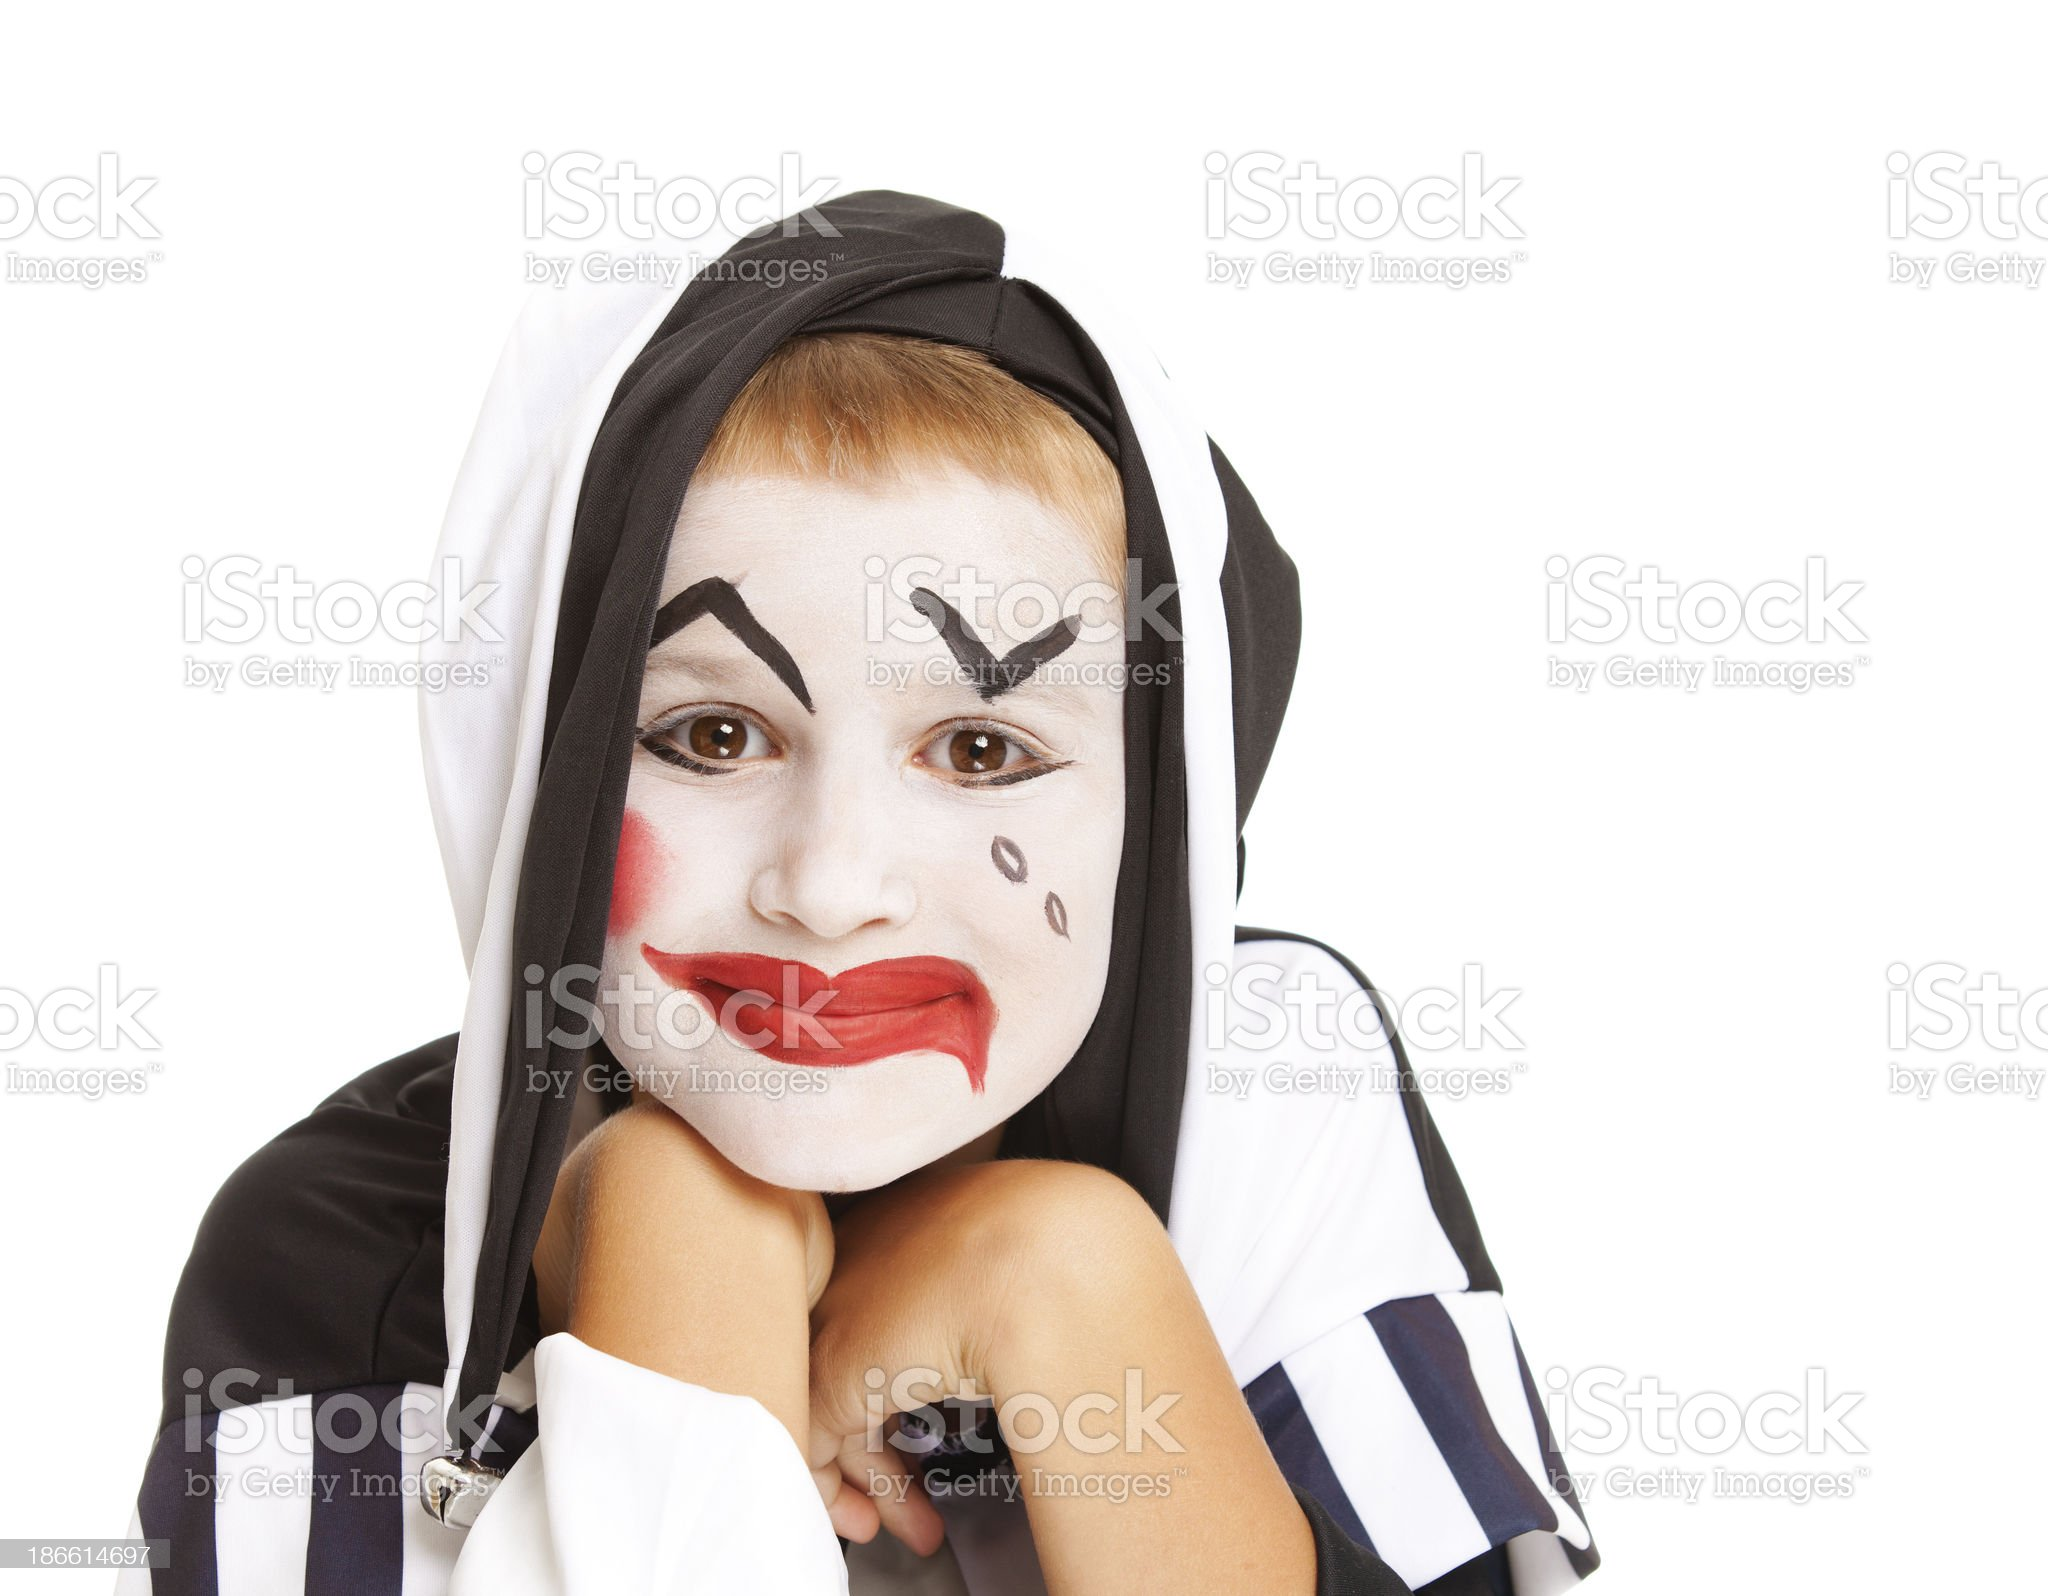 Halloween mask and costume royalty-free stock photo